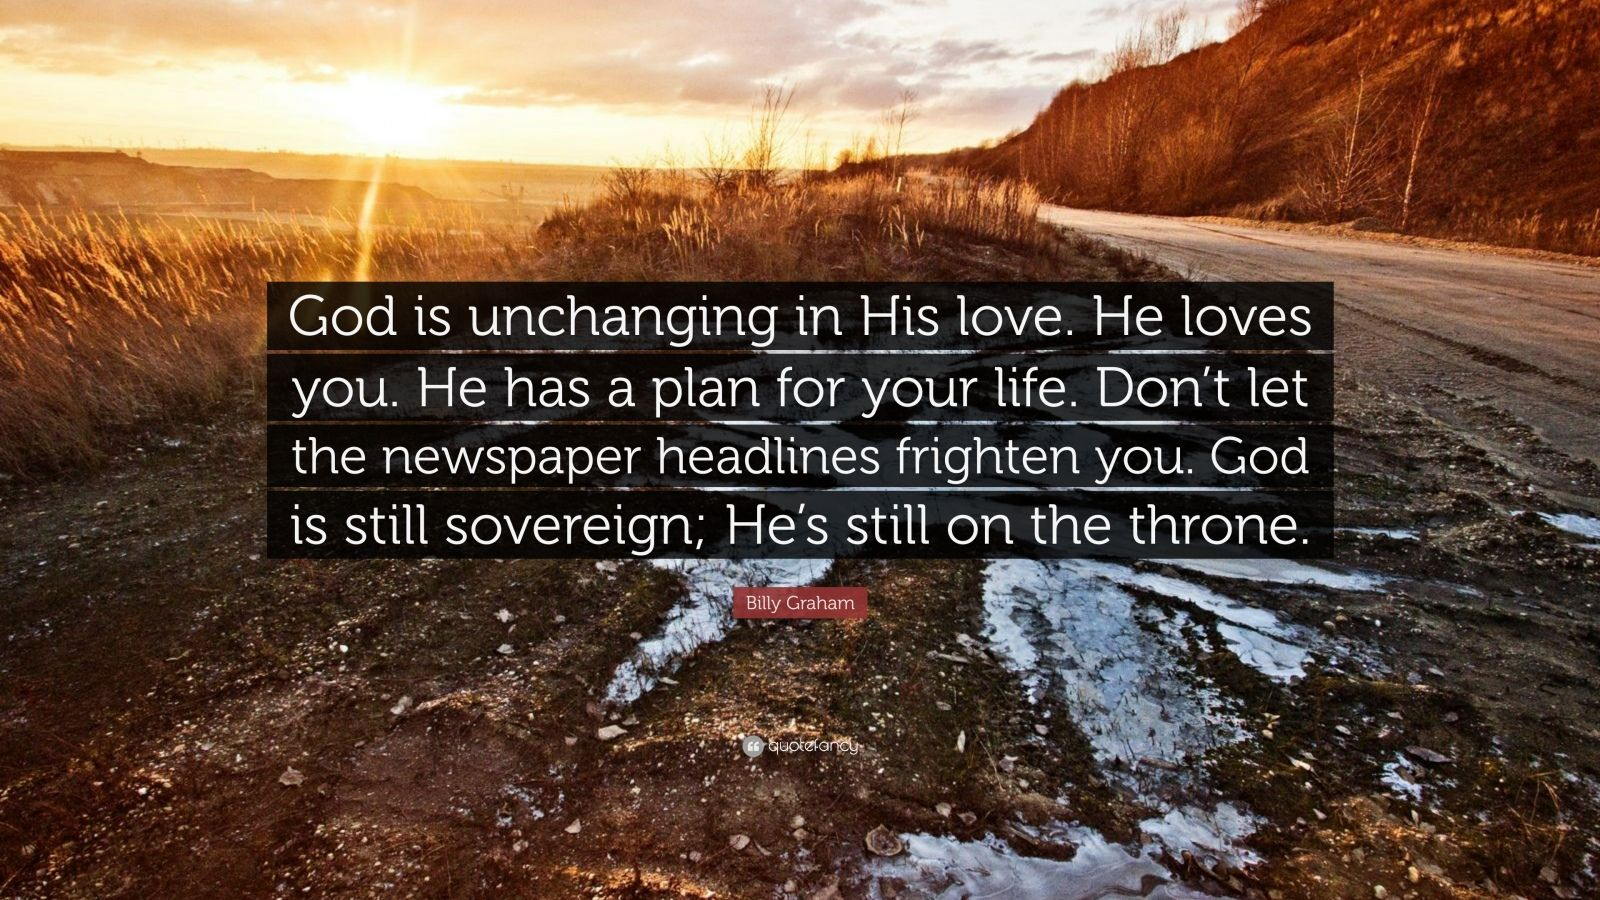 """Billy Graham Quote: """"God is unchanging in His love. He loves you. He has a plan for your life. Don't let the newspaper headlines frighten you. God is still sovereign; He's still on the throne."""""""